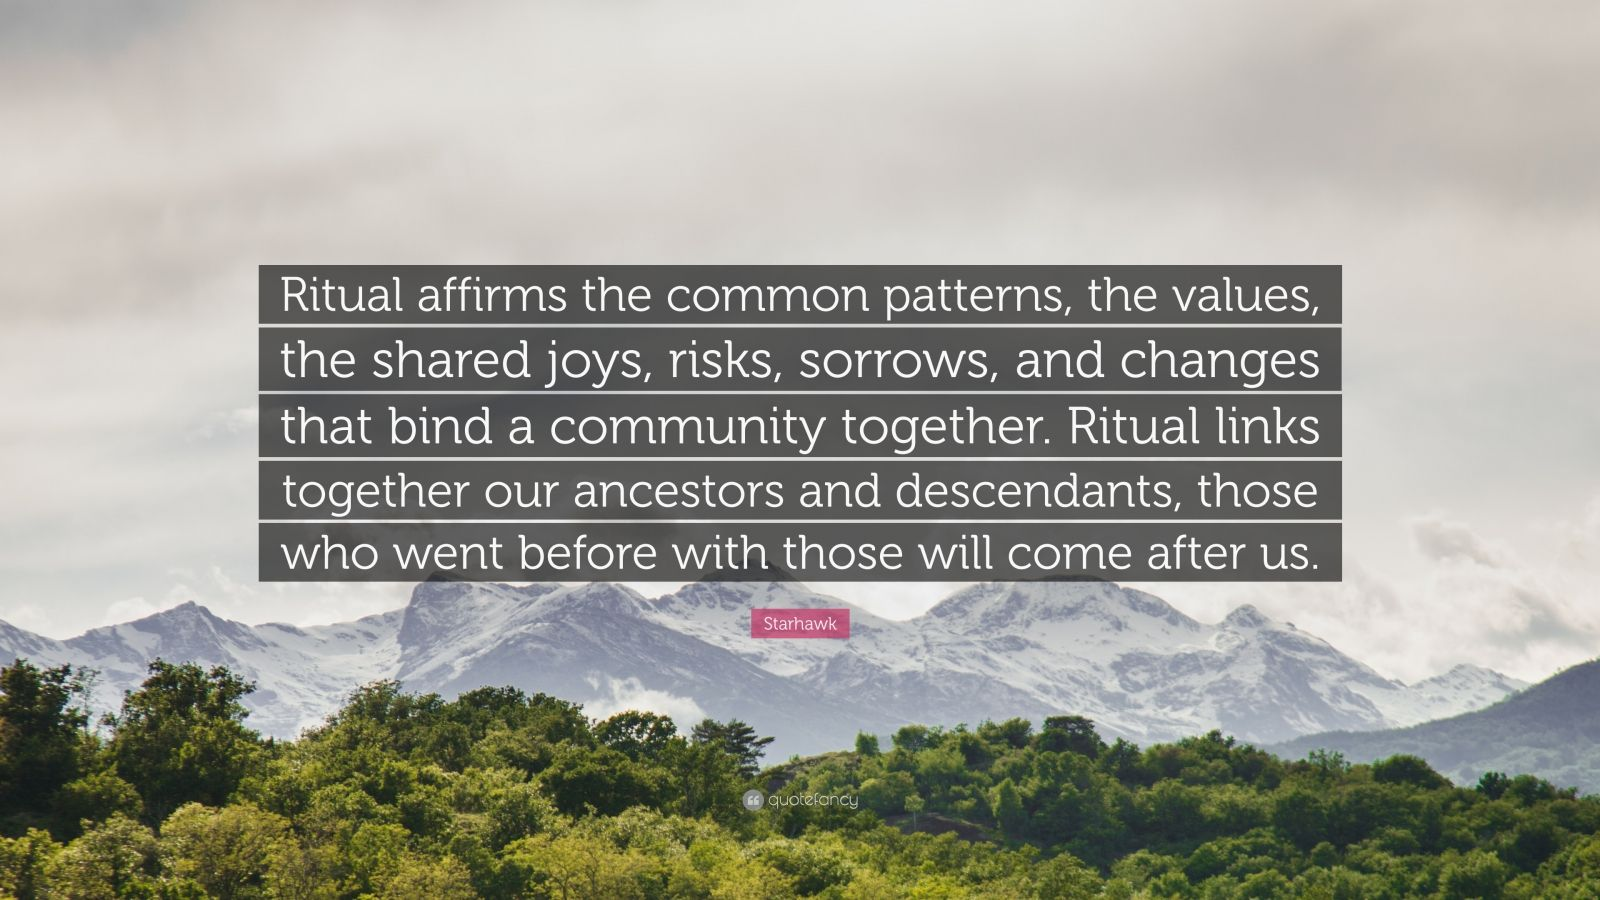 """Starhawk Quote: """"Ritual affirms the common patterns, the values, the shared joys, risks, sorrows, and changes that bind a community together. Ritual links together our ancestors and descendants, those who went before with those will come after us."""""""